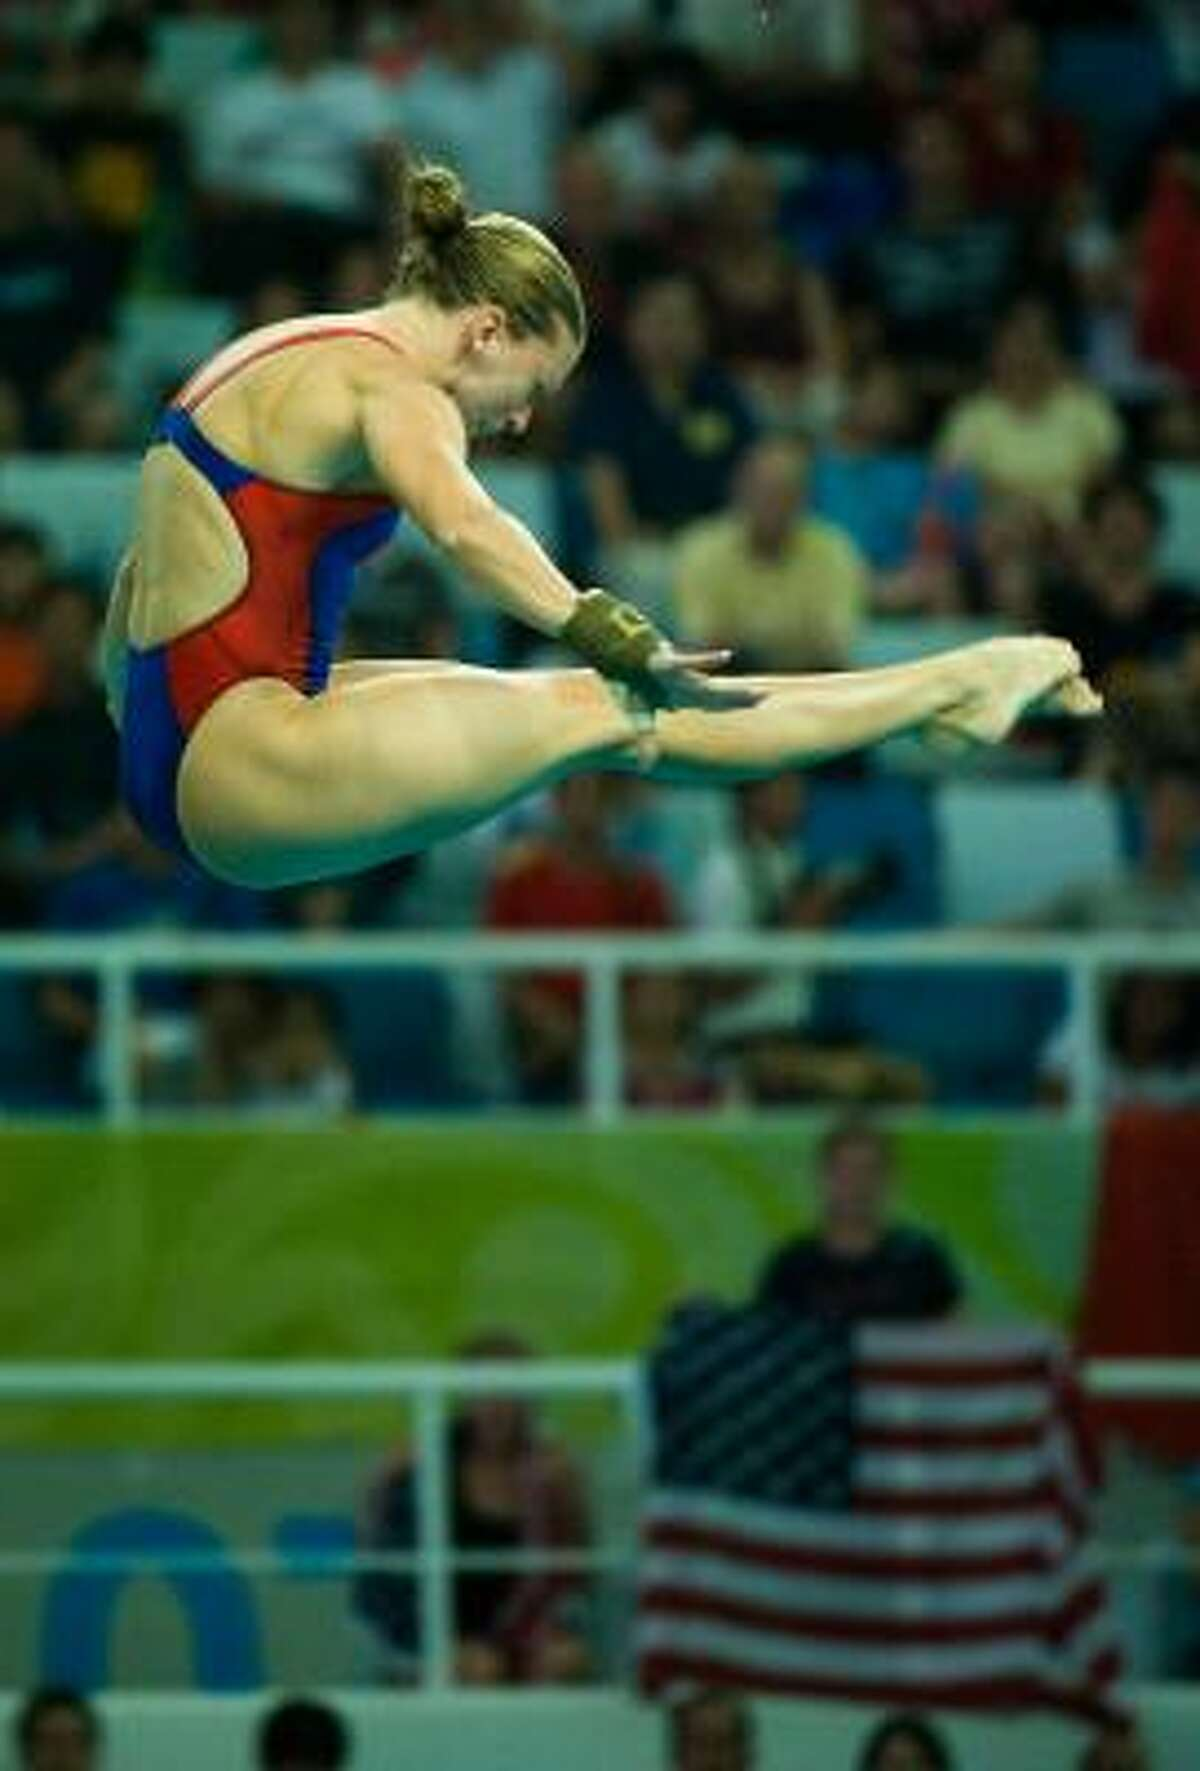 Laura Wilkinson competed at the 2008 Olympics in Beijing, her third time at the Olympics.